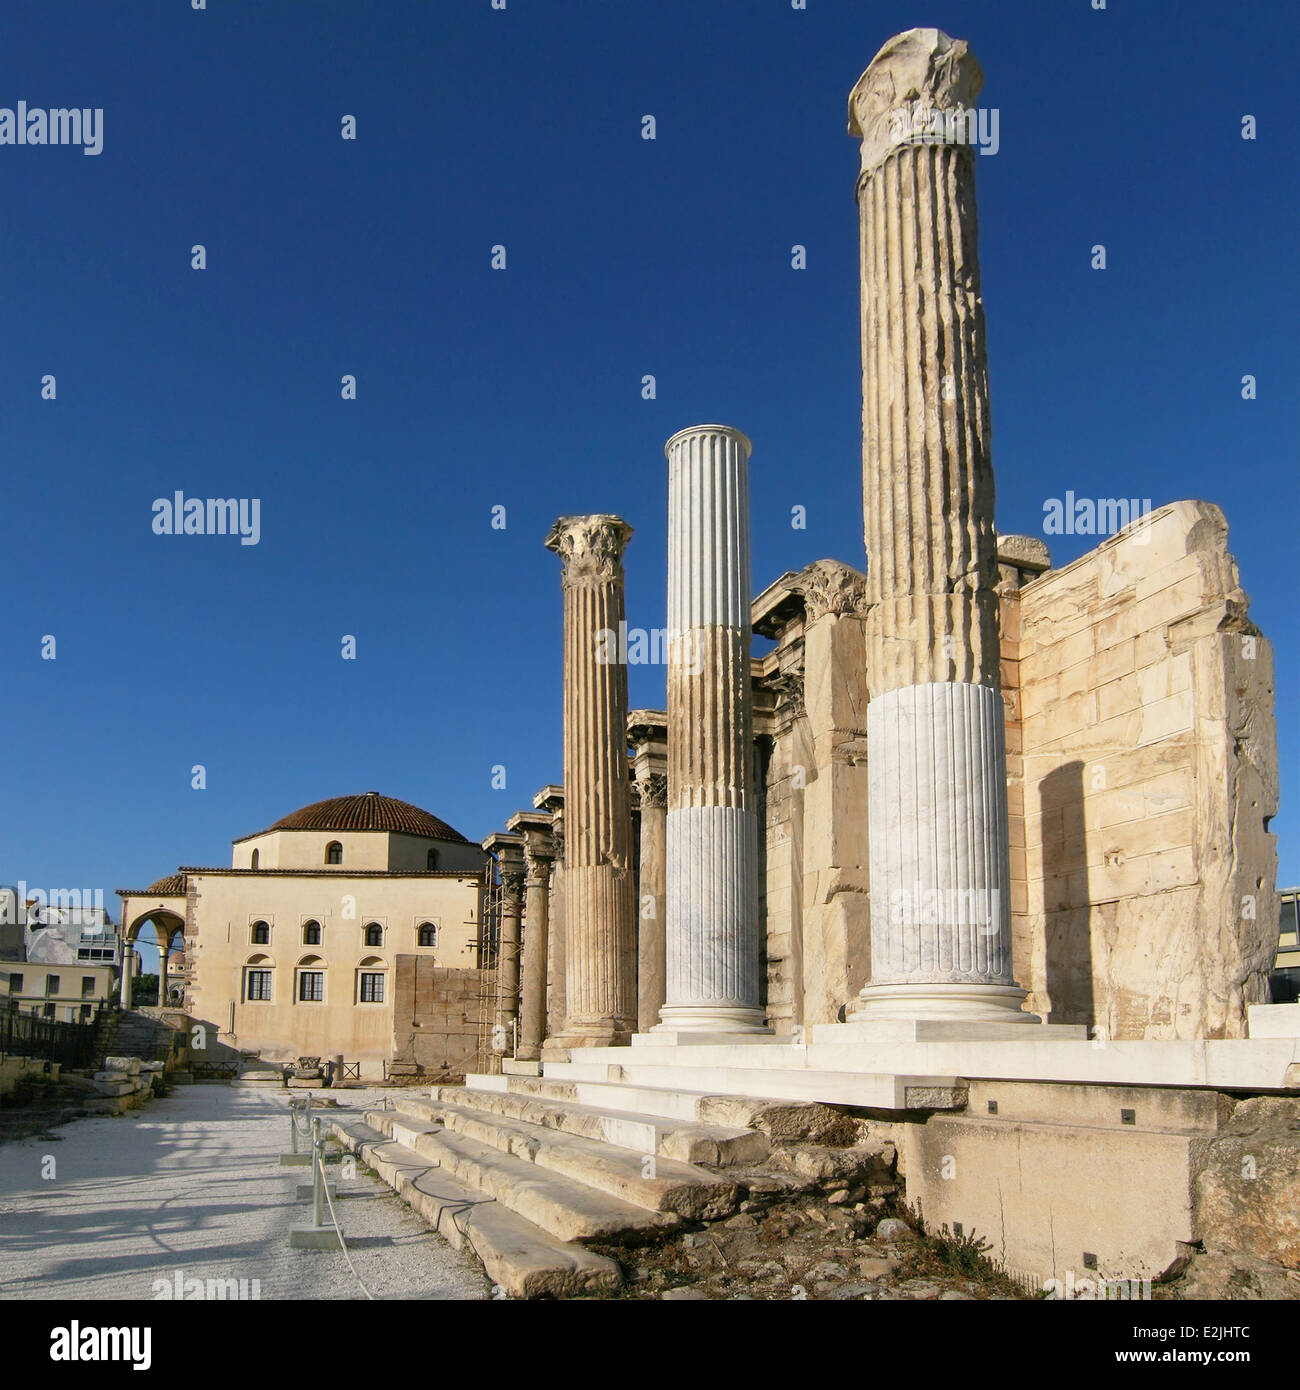 Ruins of the Hadrian's Library in Athens, Greece. - Stock Image